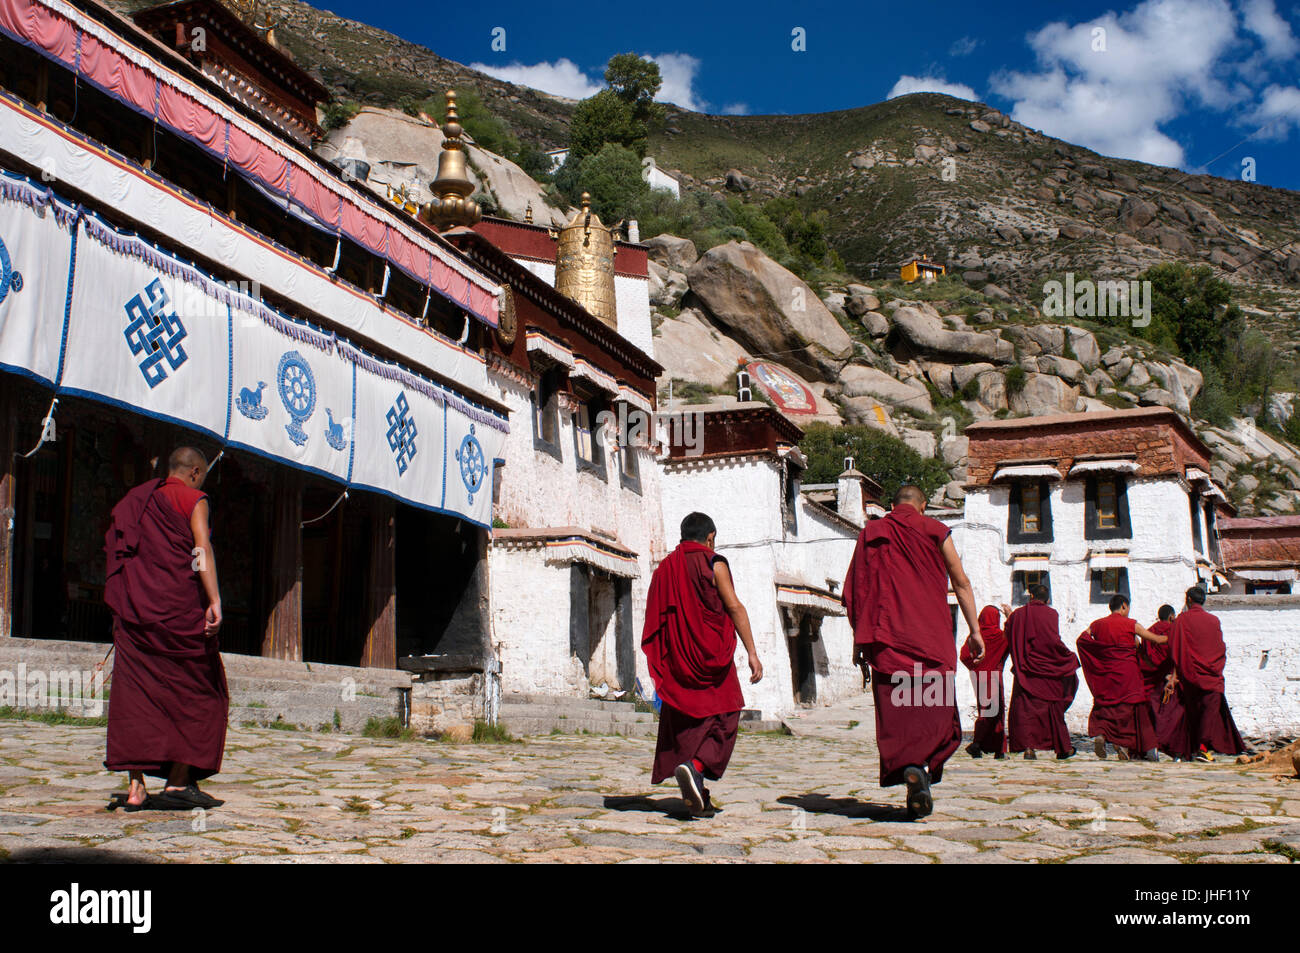 Monks outside of the Sera Monastery Temple, Lhasa, Tibet. The monastery of Sera, in Lhasa, is known for the discussions - Stock Image